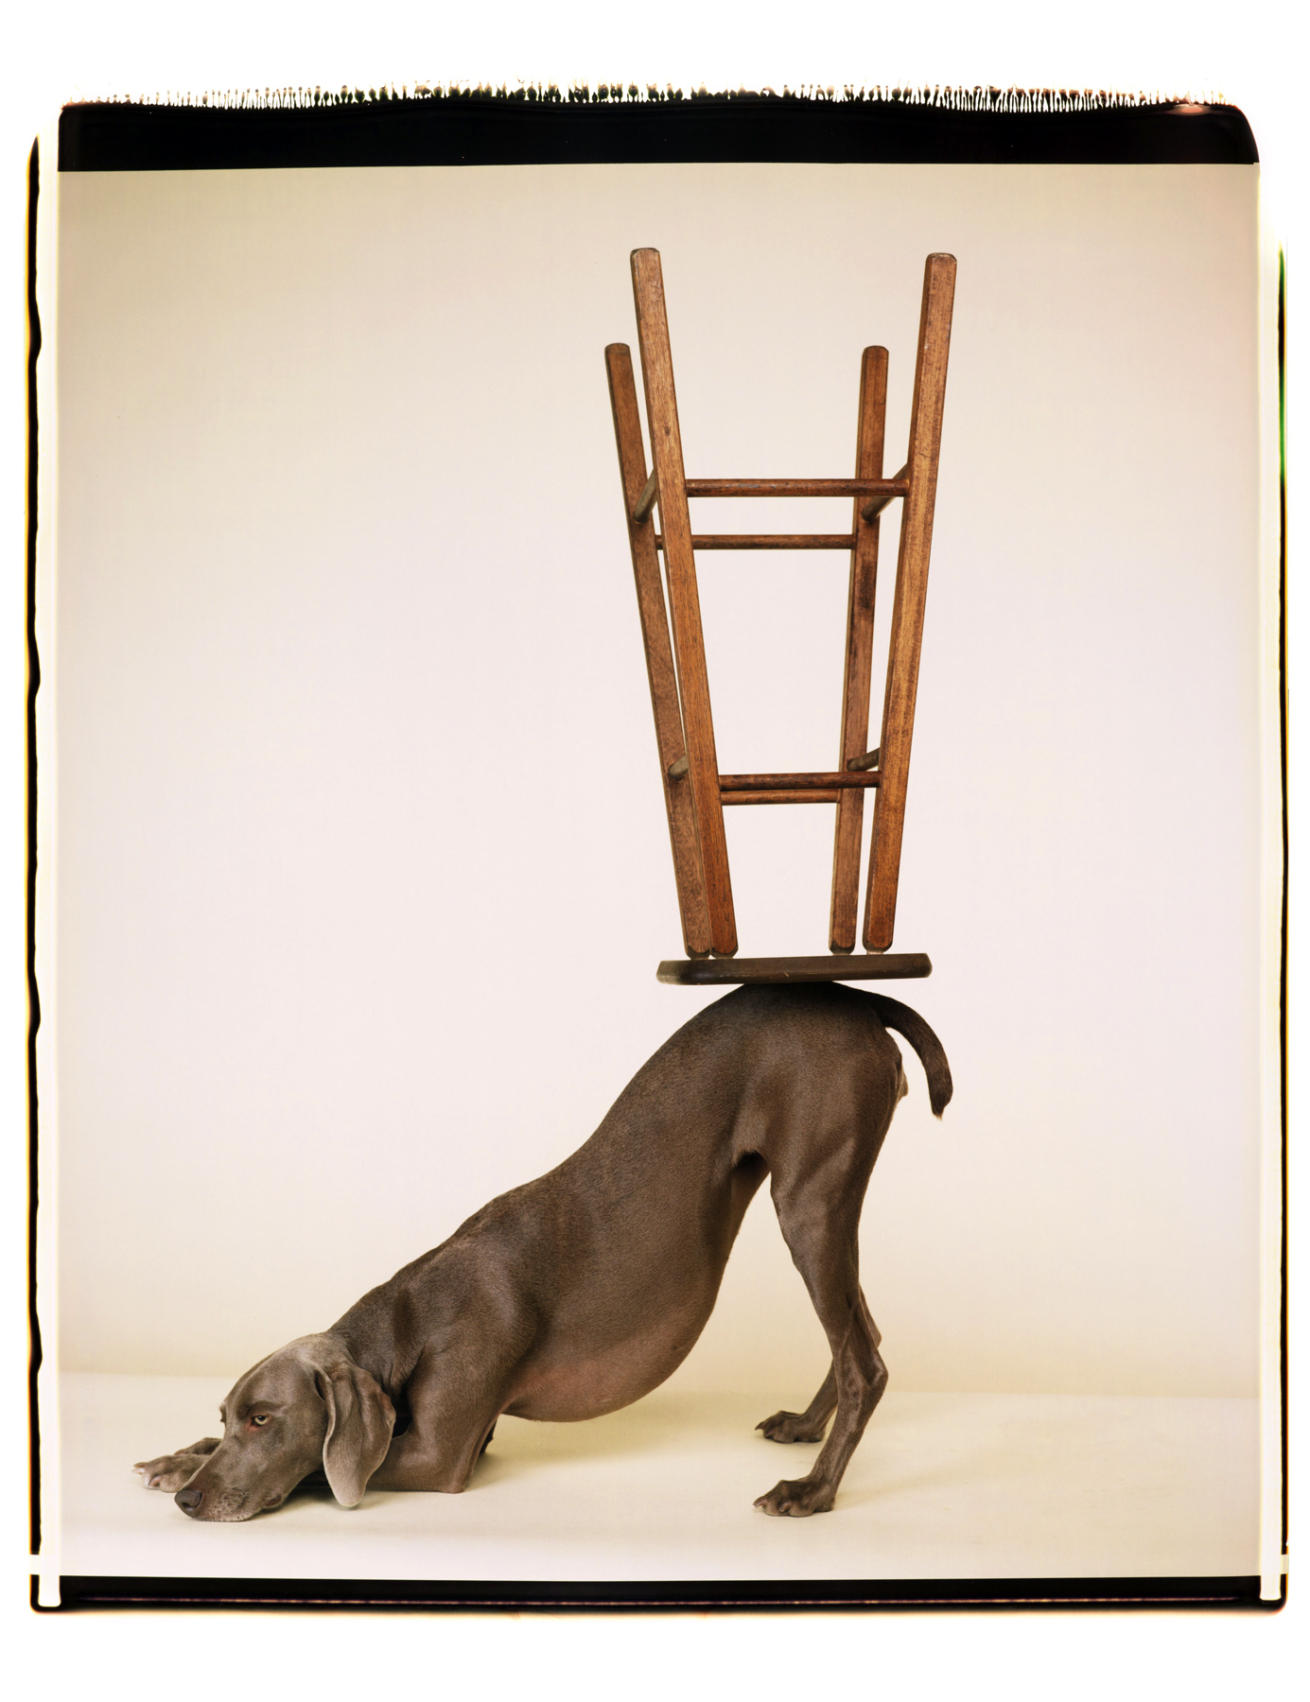 Fotó: William Wegman: Upside Downward, 2006 © William Wegman